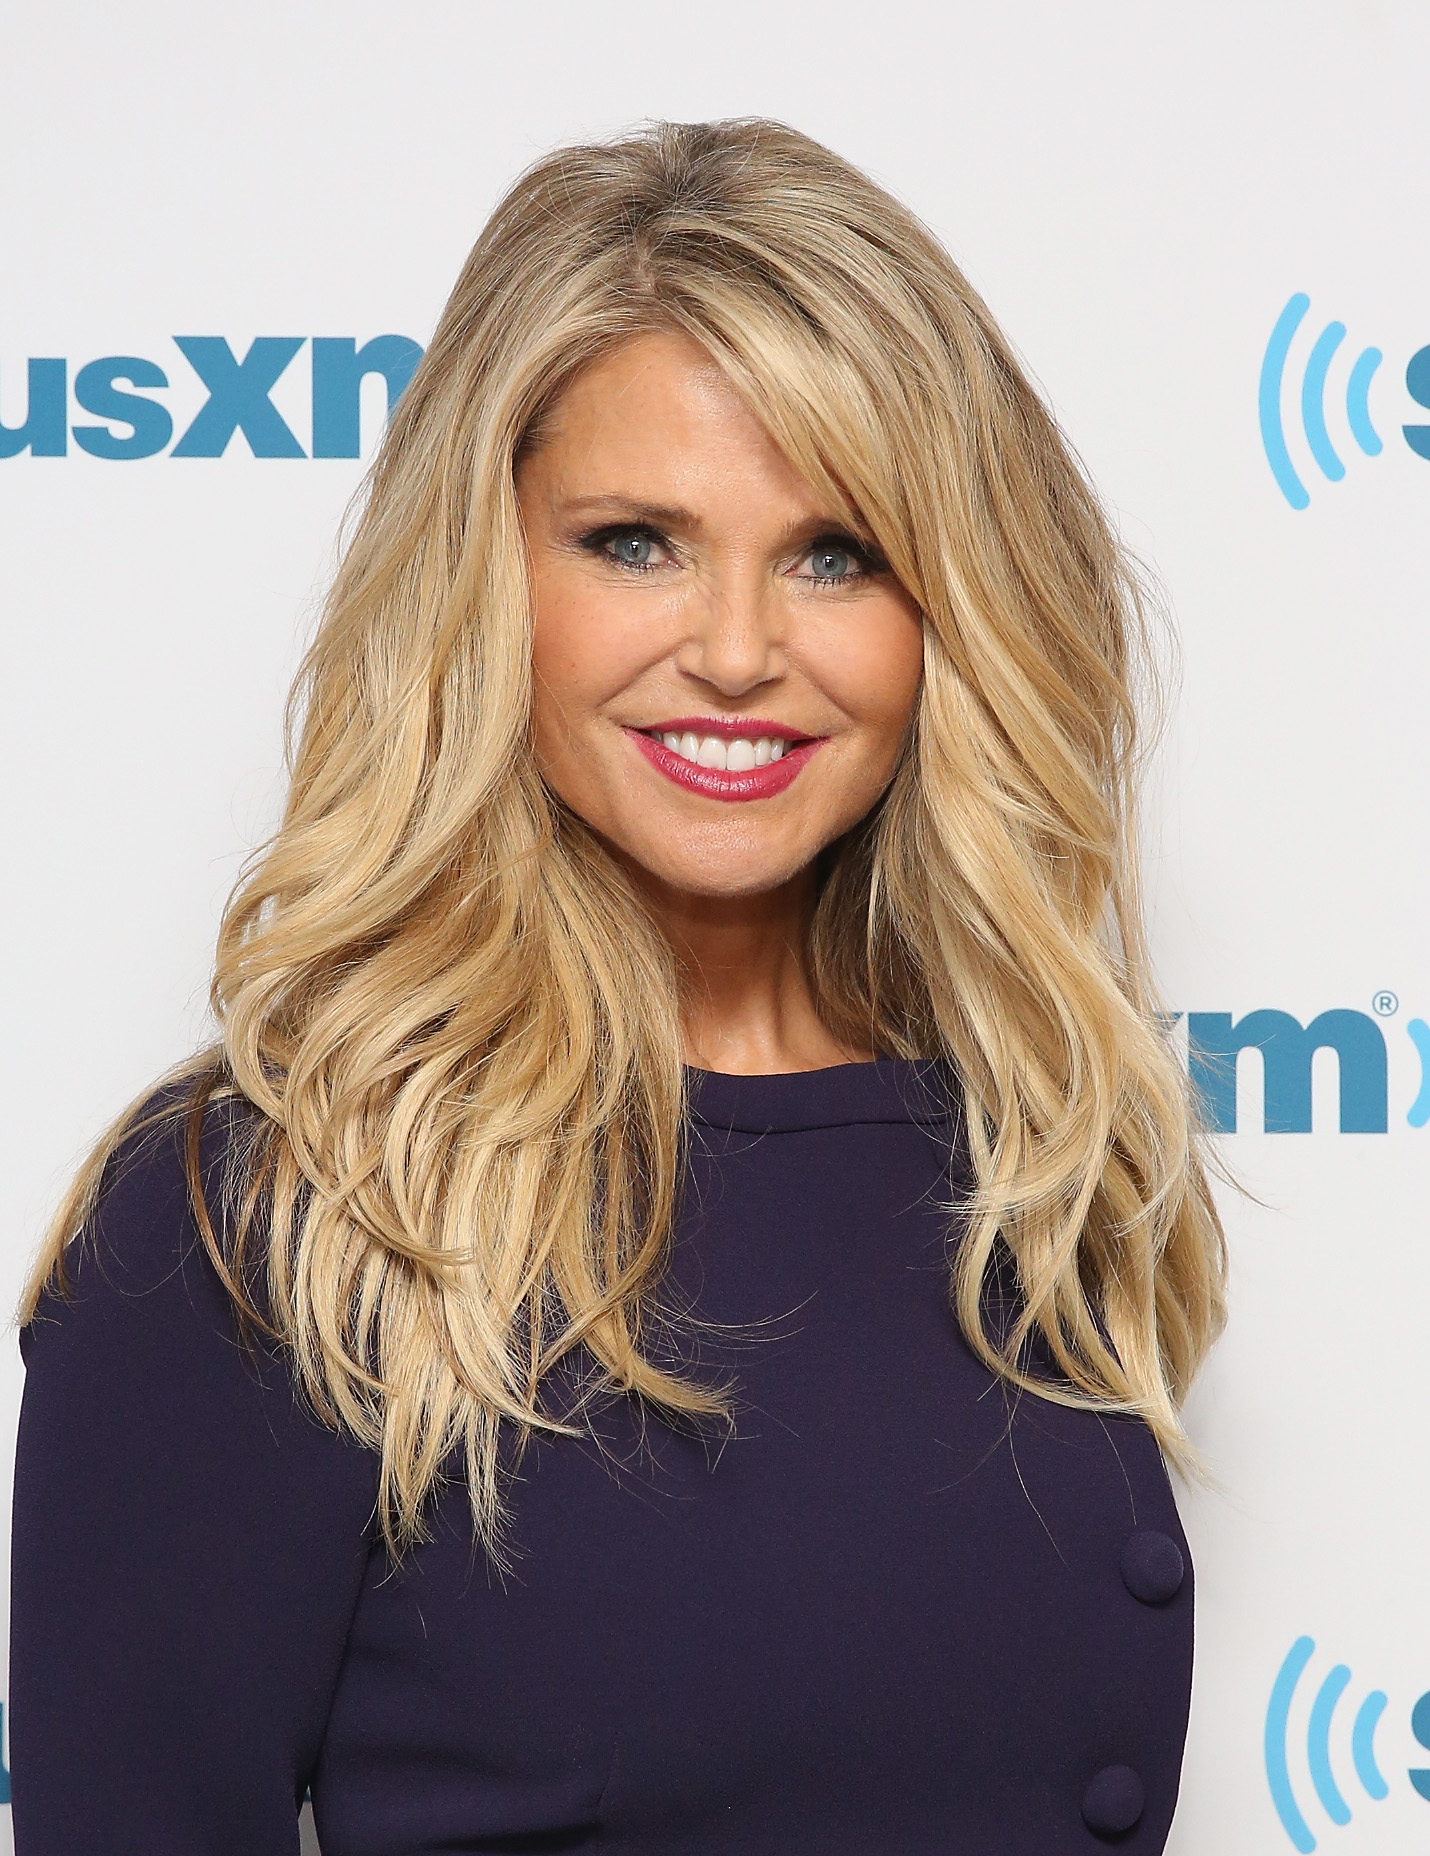 how tall is christie brinkley